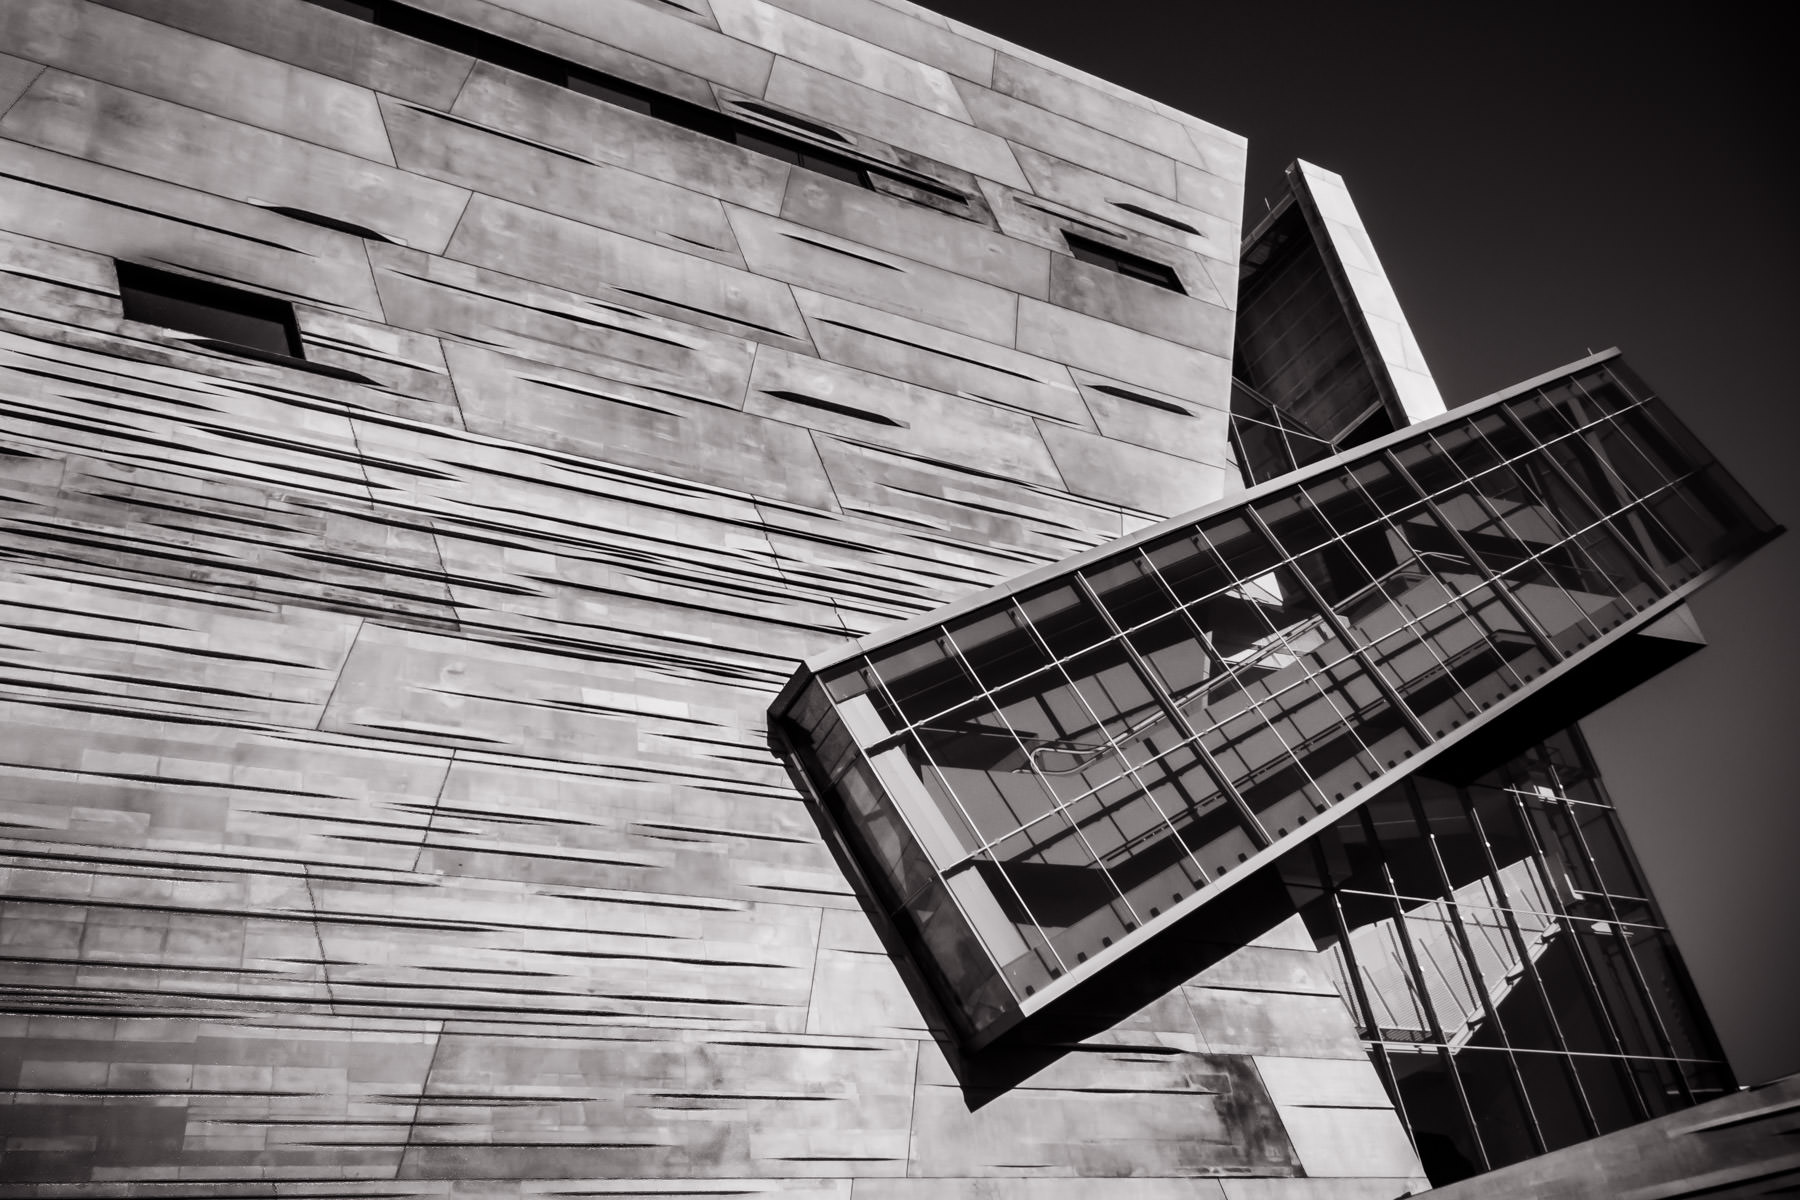 Exterior detail of Dallas' Perot Museum of Nature & Science.